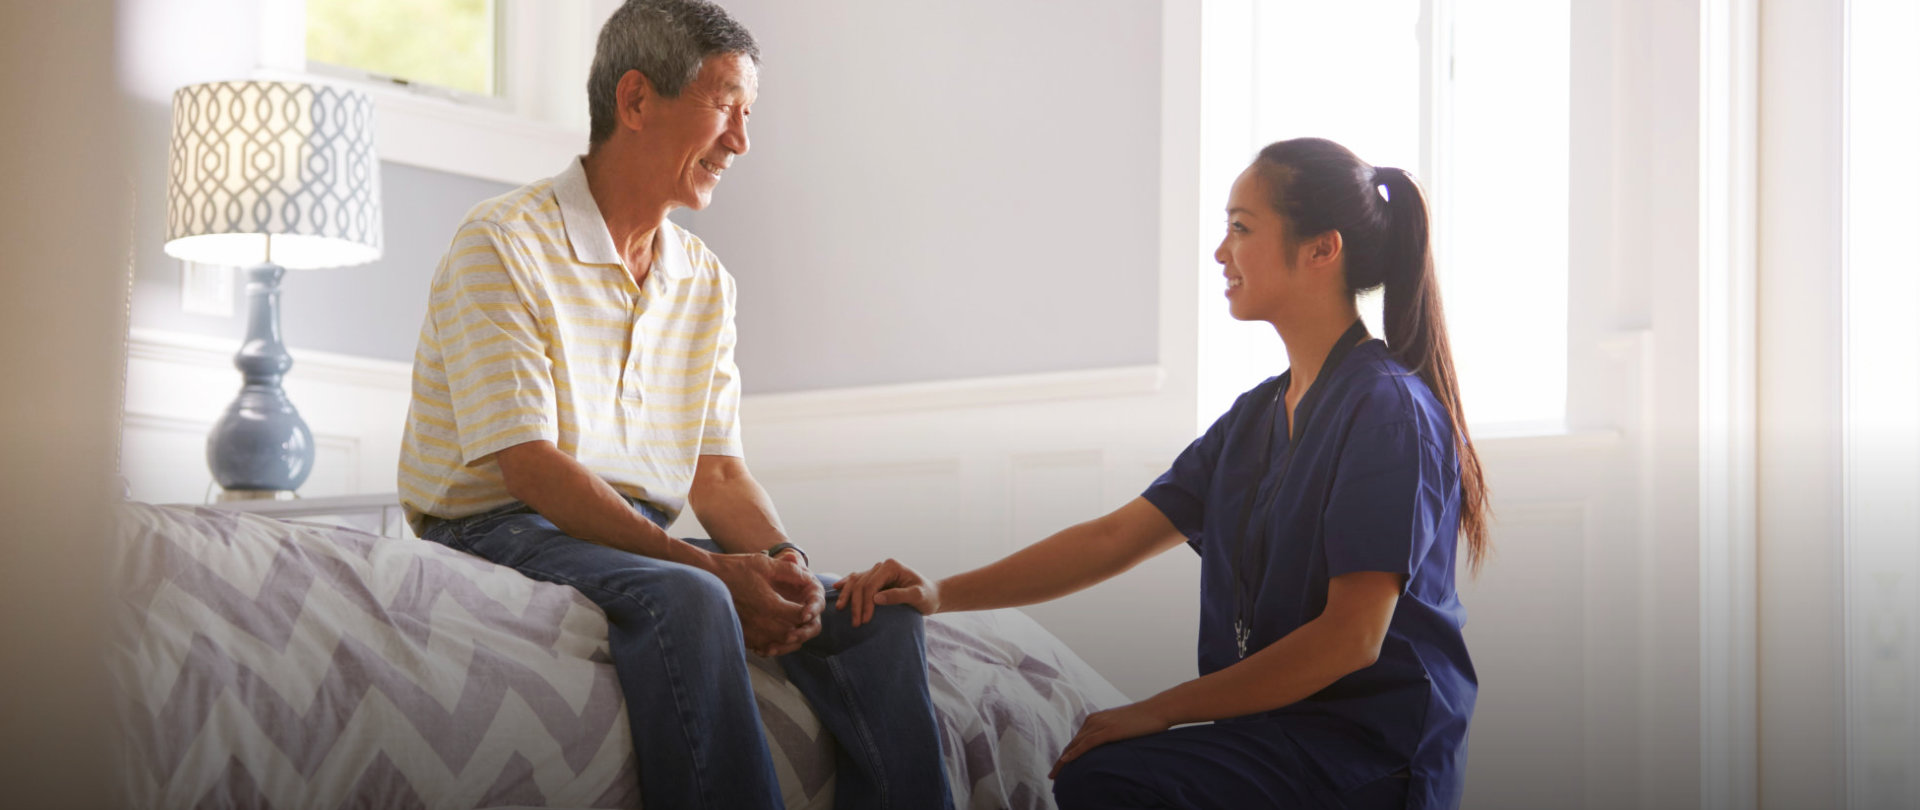 A patient looks happy facing to caregiver